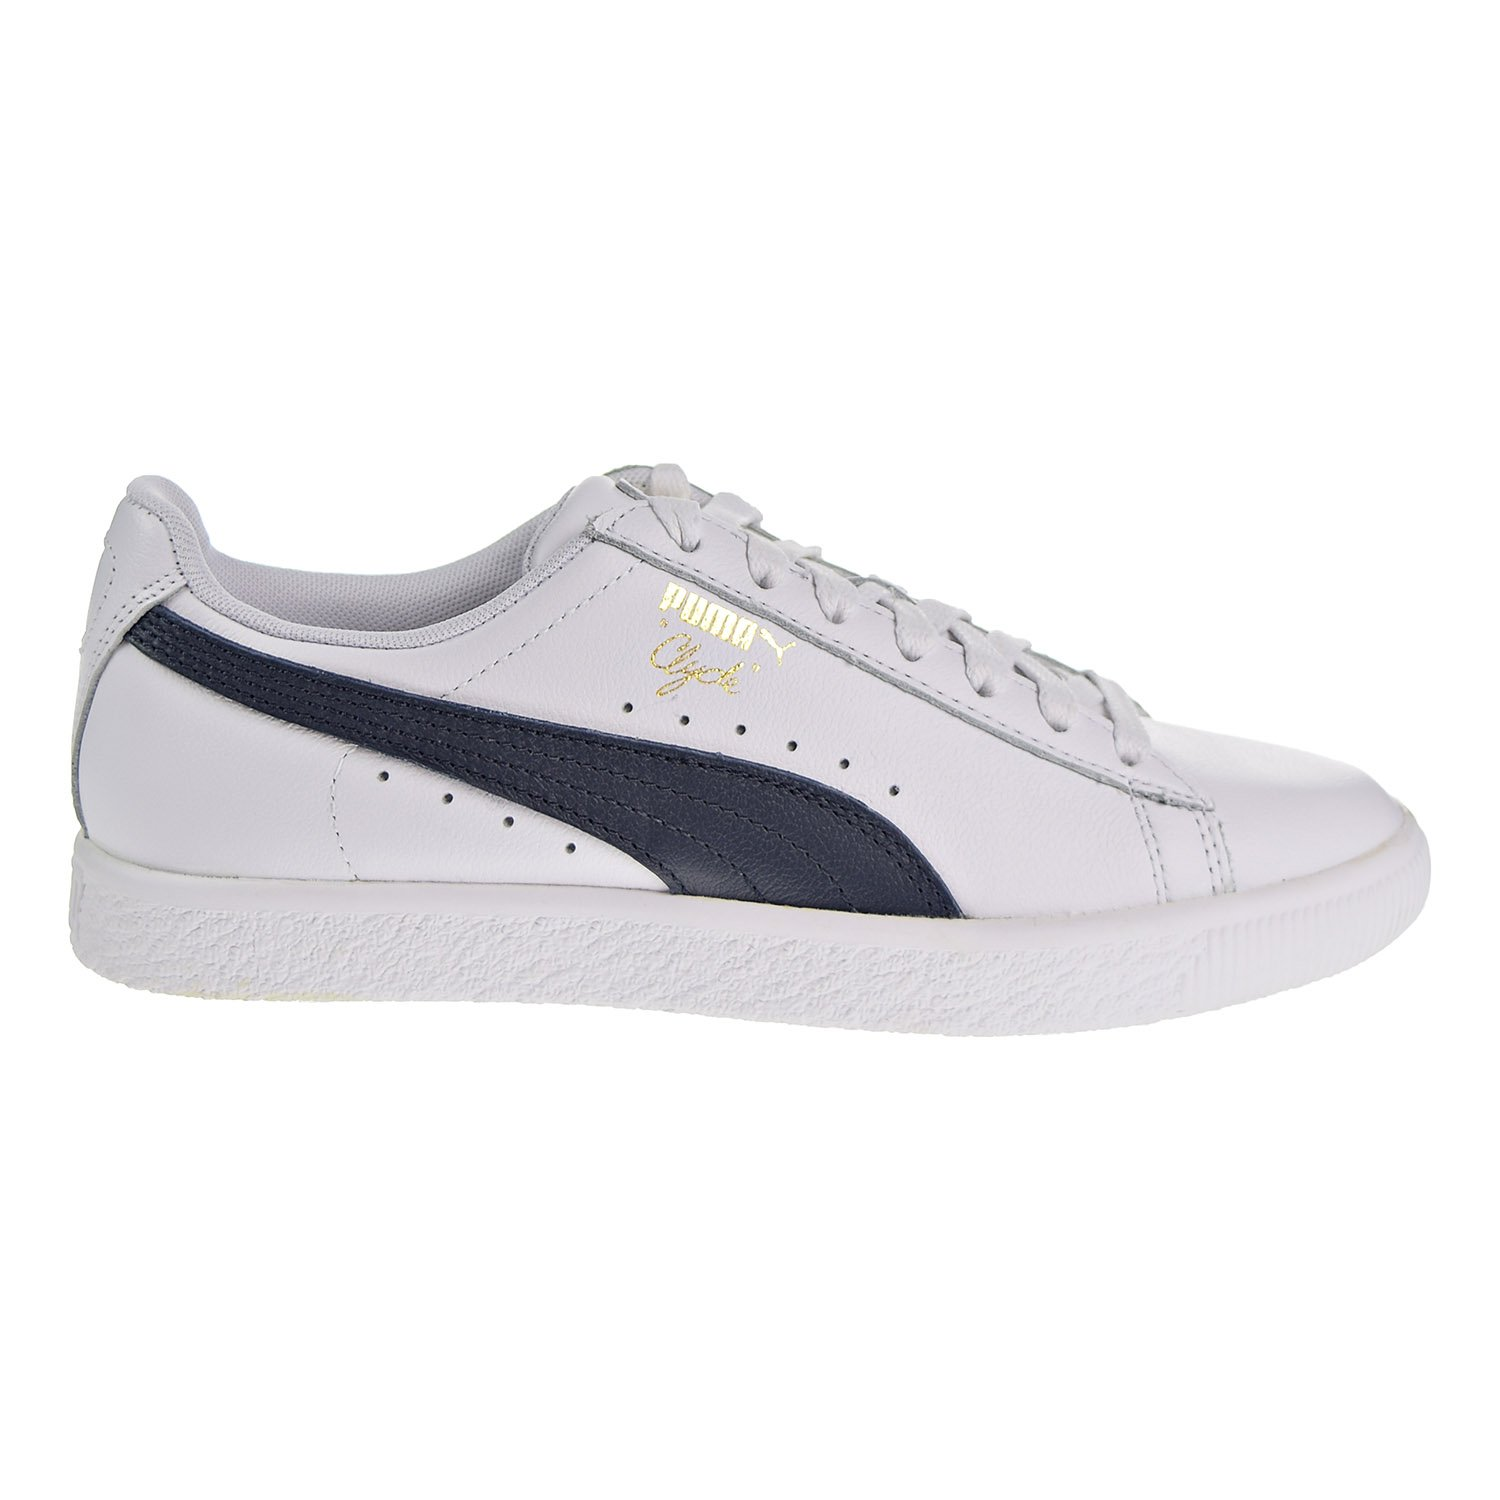 pretty nice f5cd8 a3bb6 PUMA Women's Clyde Core Foil Sneaker